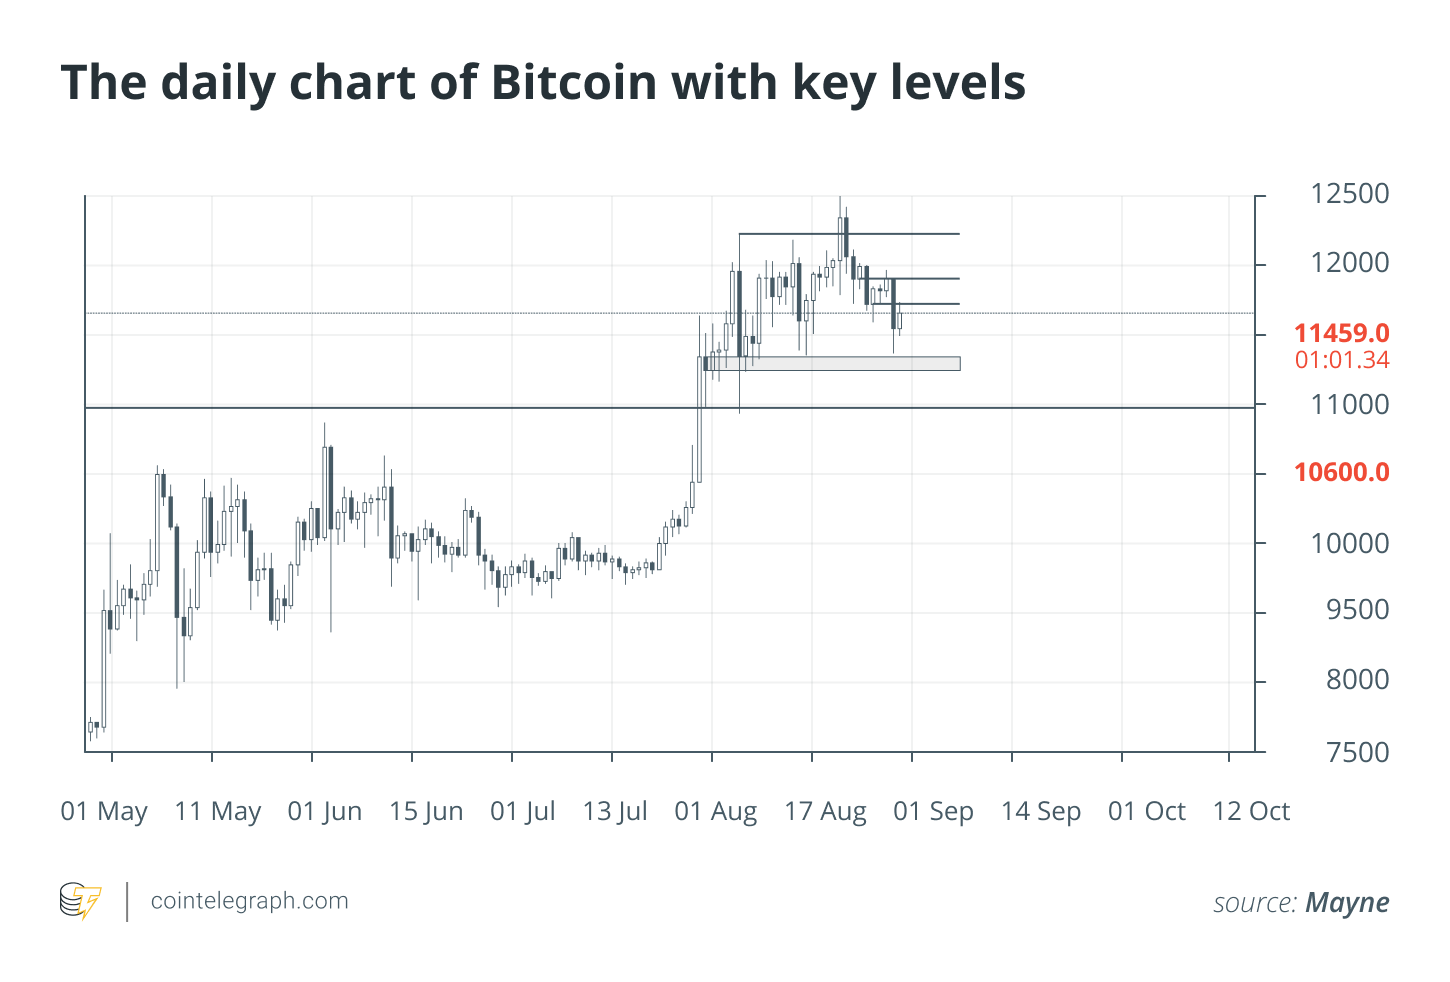 The daily chart of Bitcoin with key levels